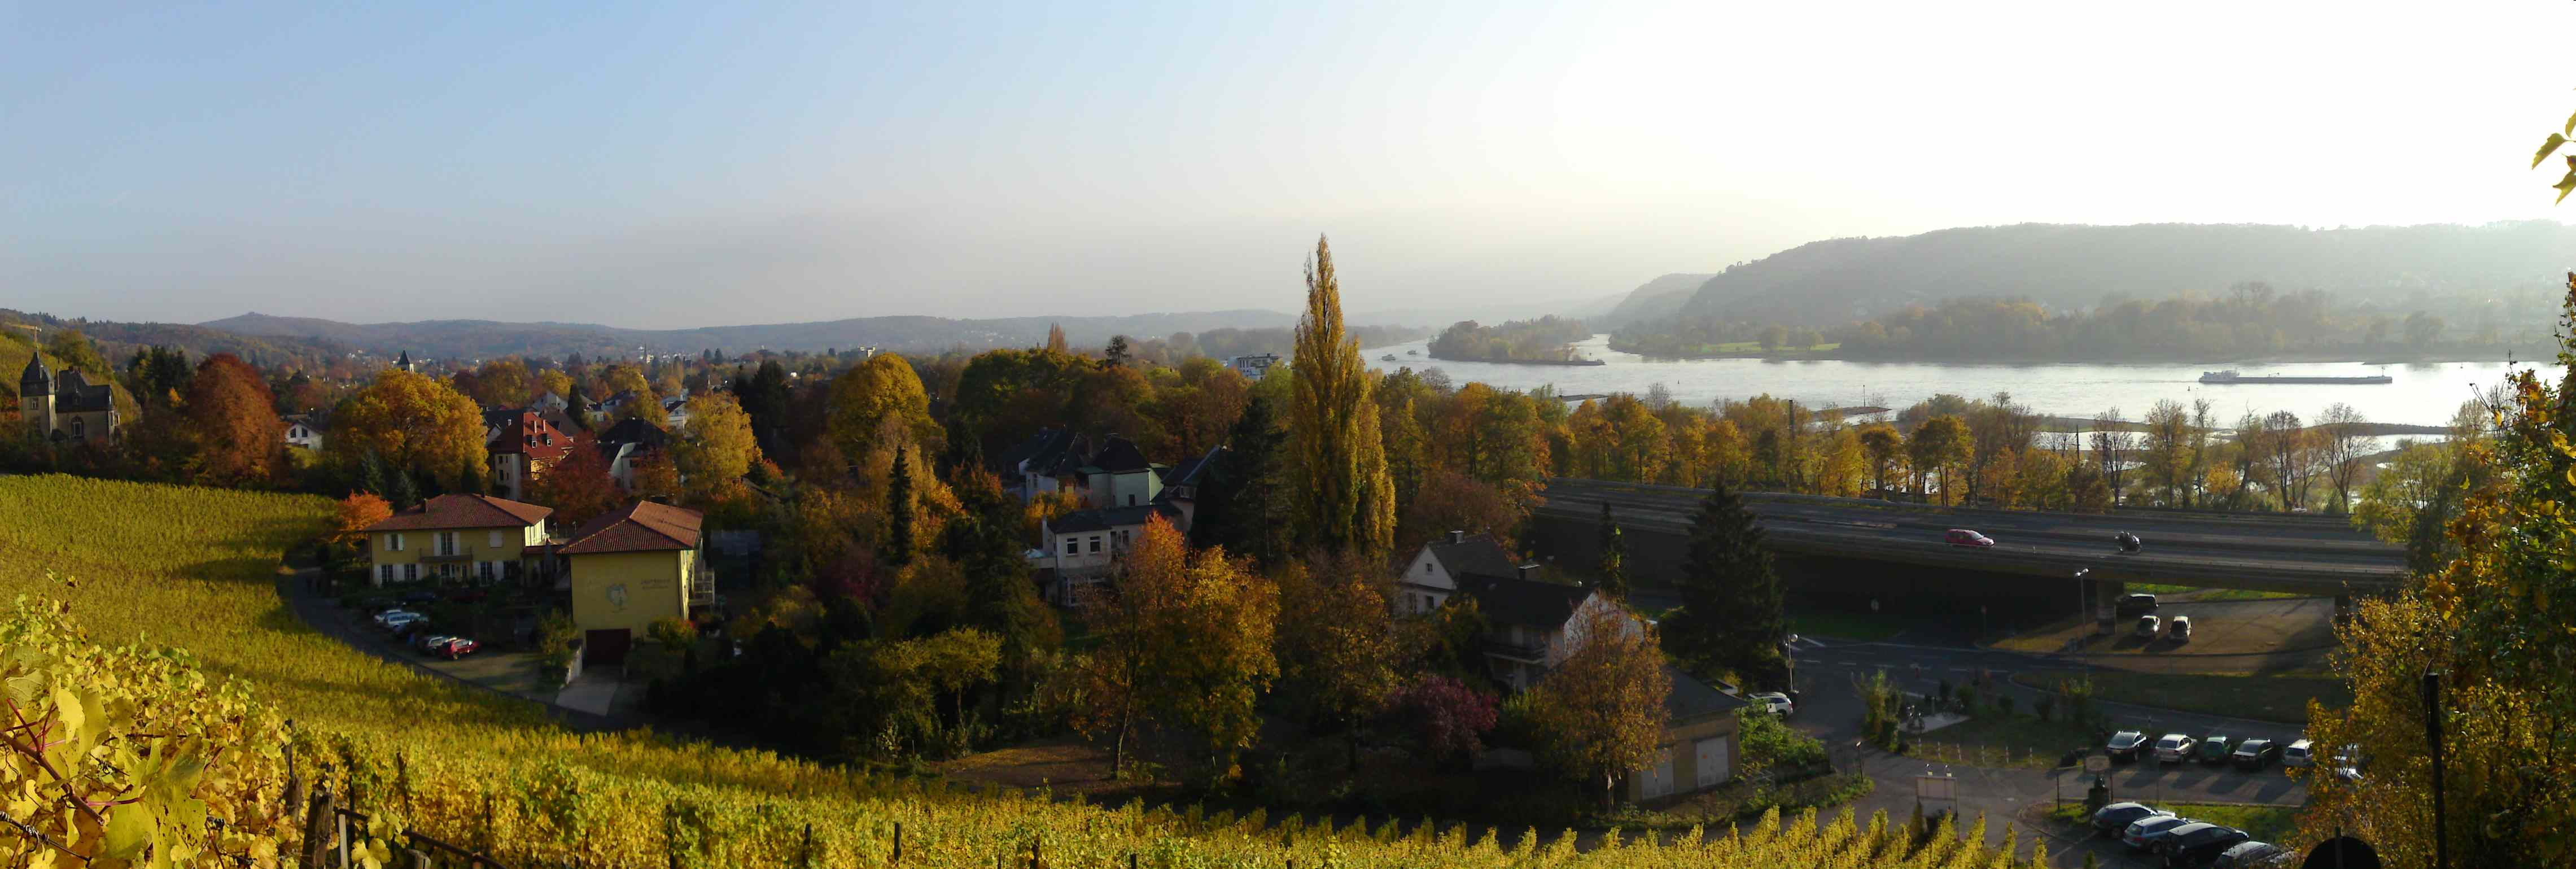 Panorama of rhine near Drachenfels